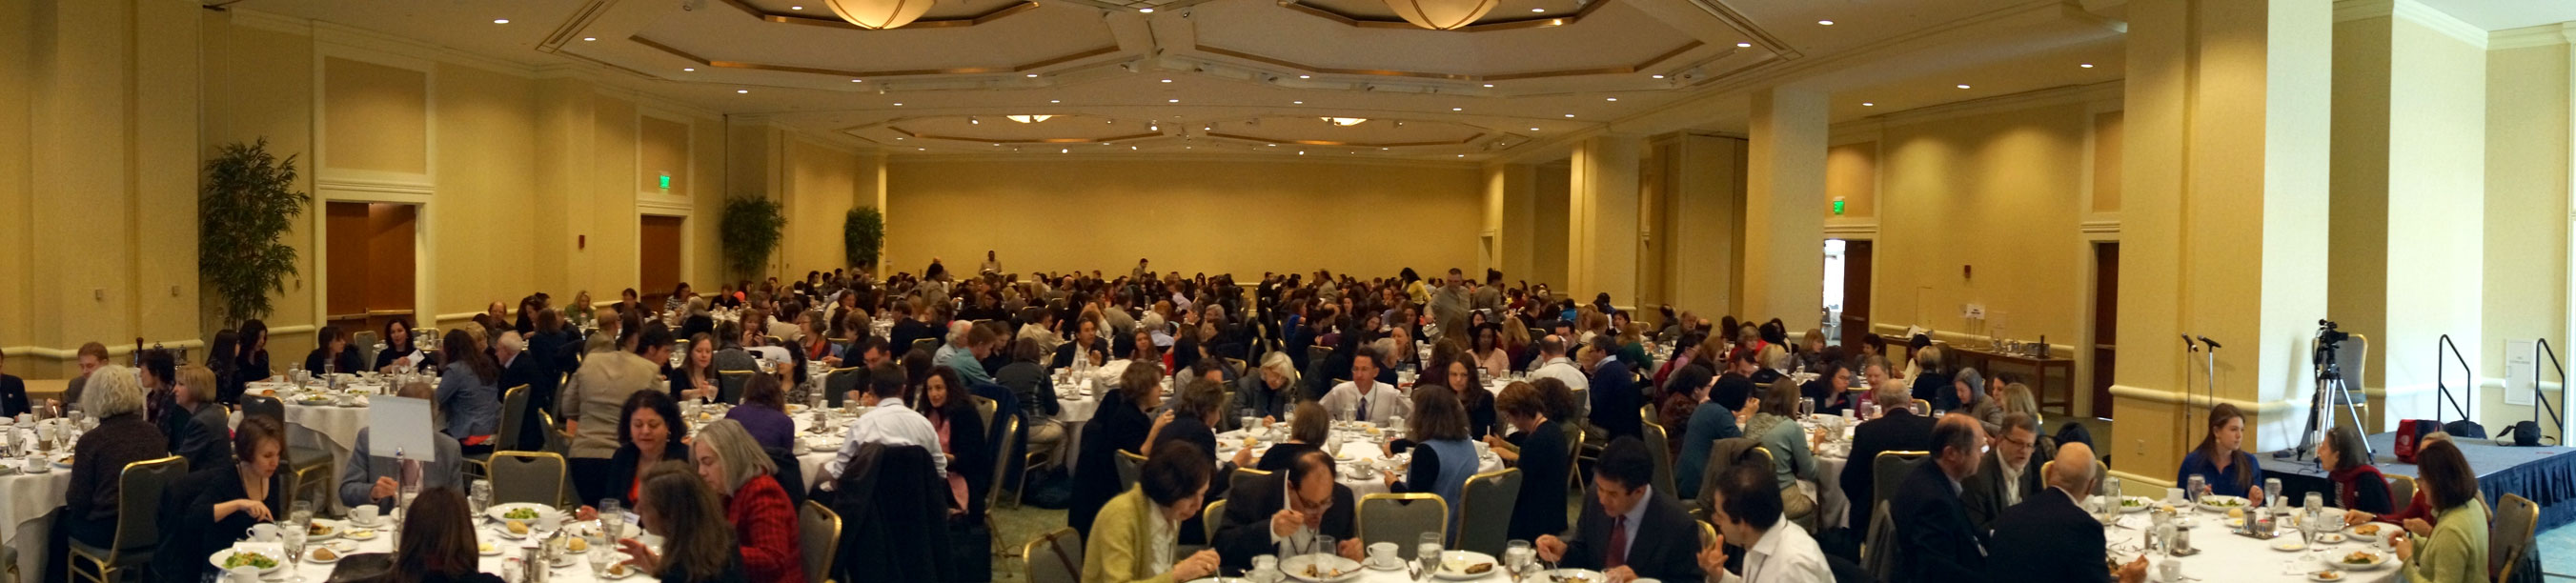 Saturday's luncheon featured presentation of the Awards for Excellence in Health Care Journalism. (Photo: Len Bruzzese)